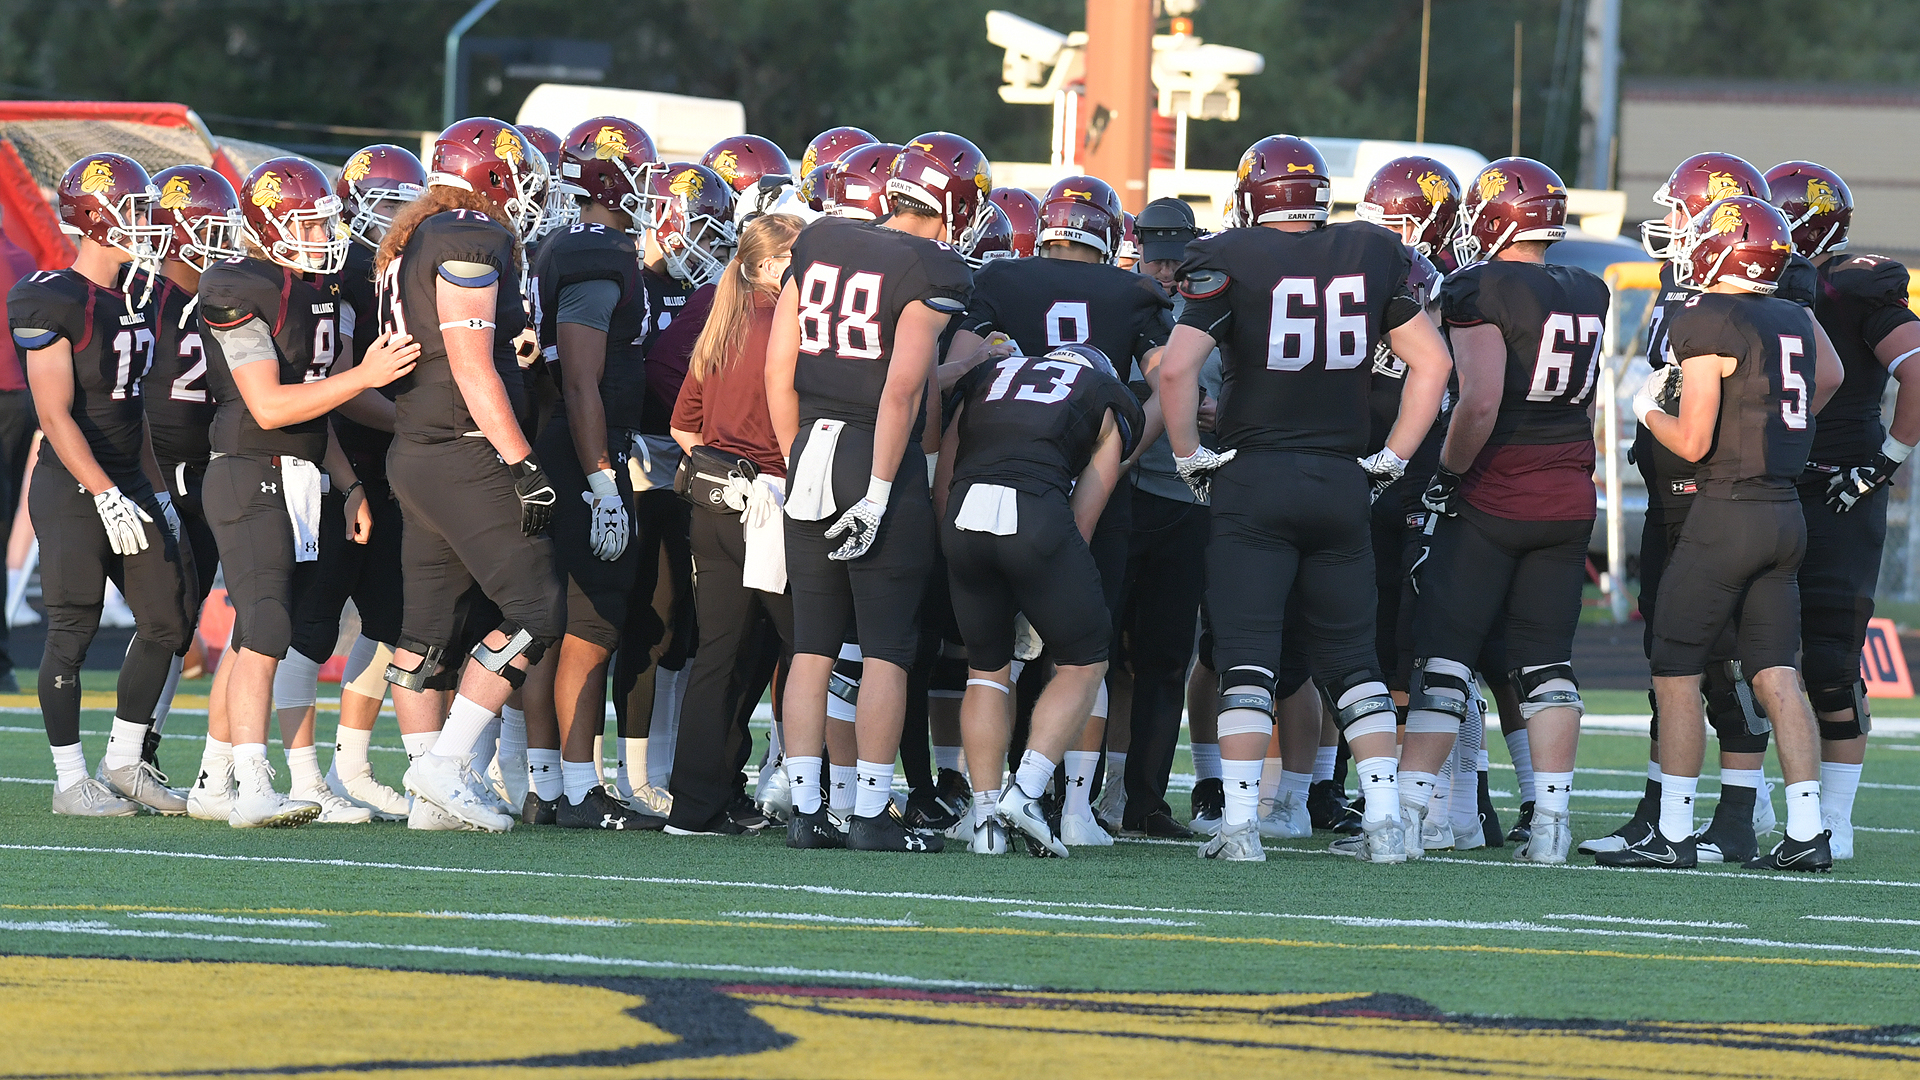 2018 umd football  by the numbers - umd athletics